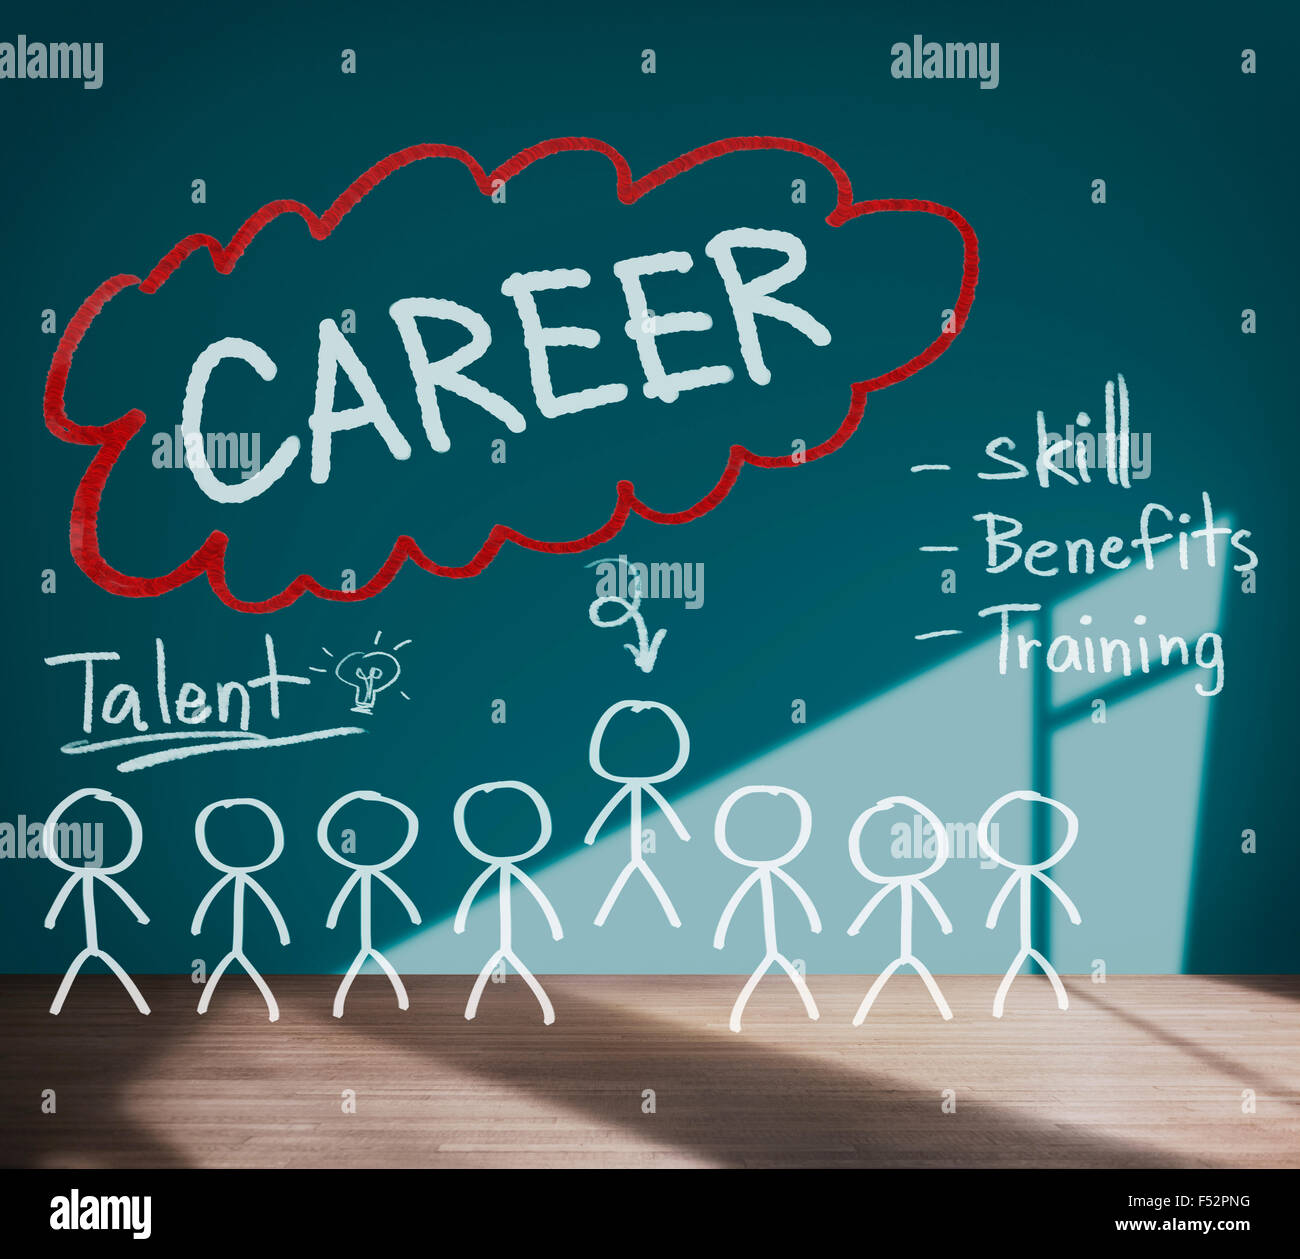 Careers Employment Job Recruitment Occupation Concept Stock Photo